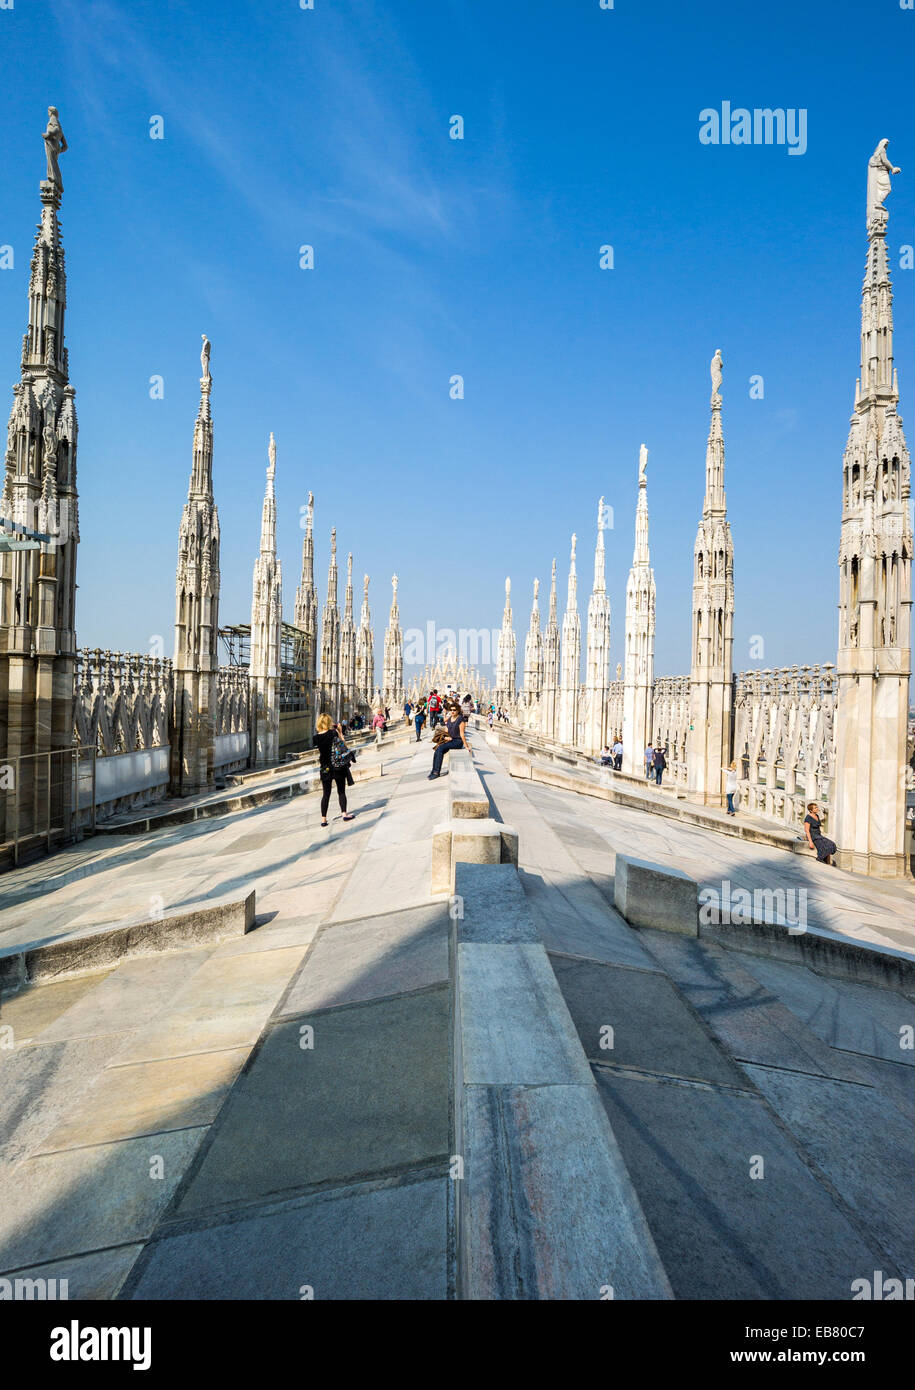 Italy, Milan, people between the spires and marle works of the Duomo cathedral rooftop - Stock Image